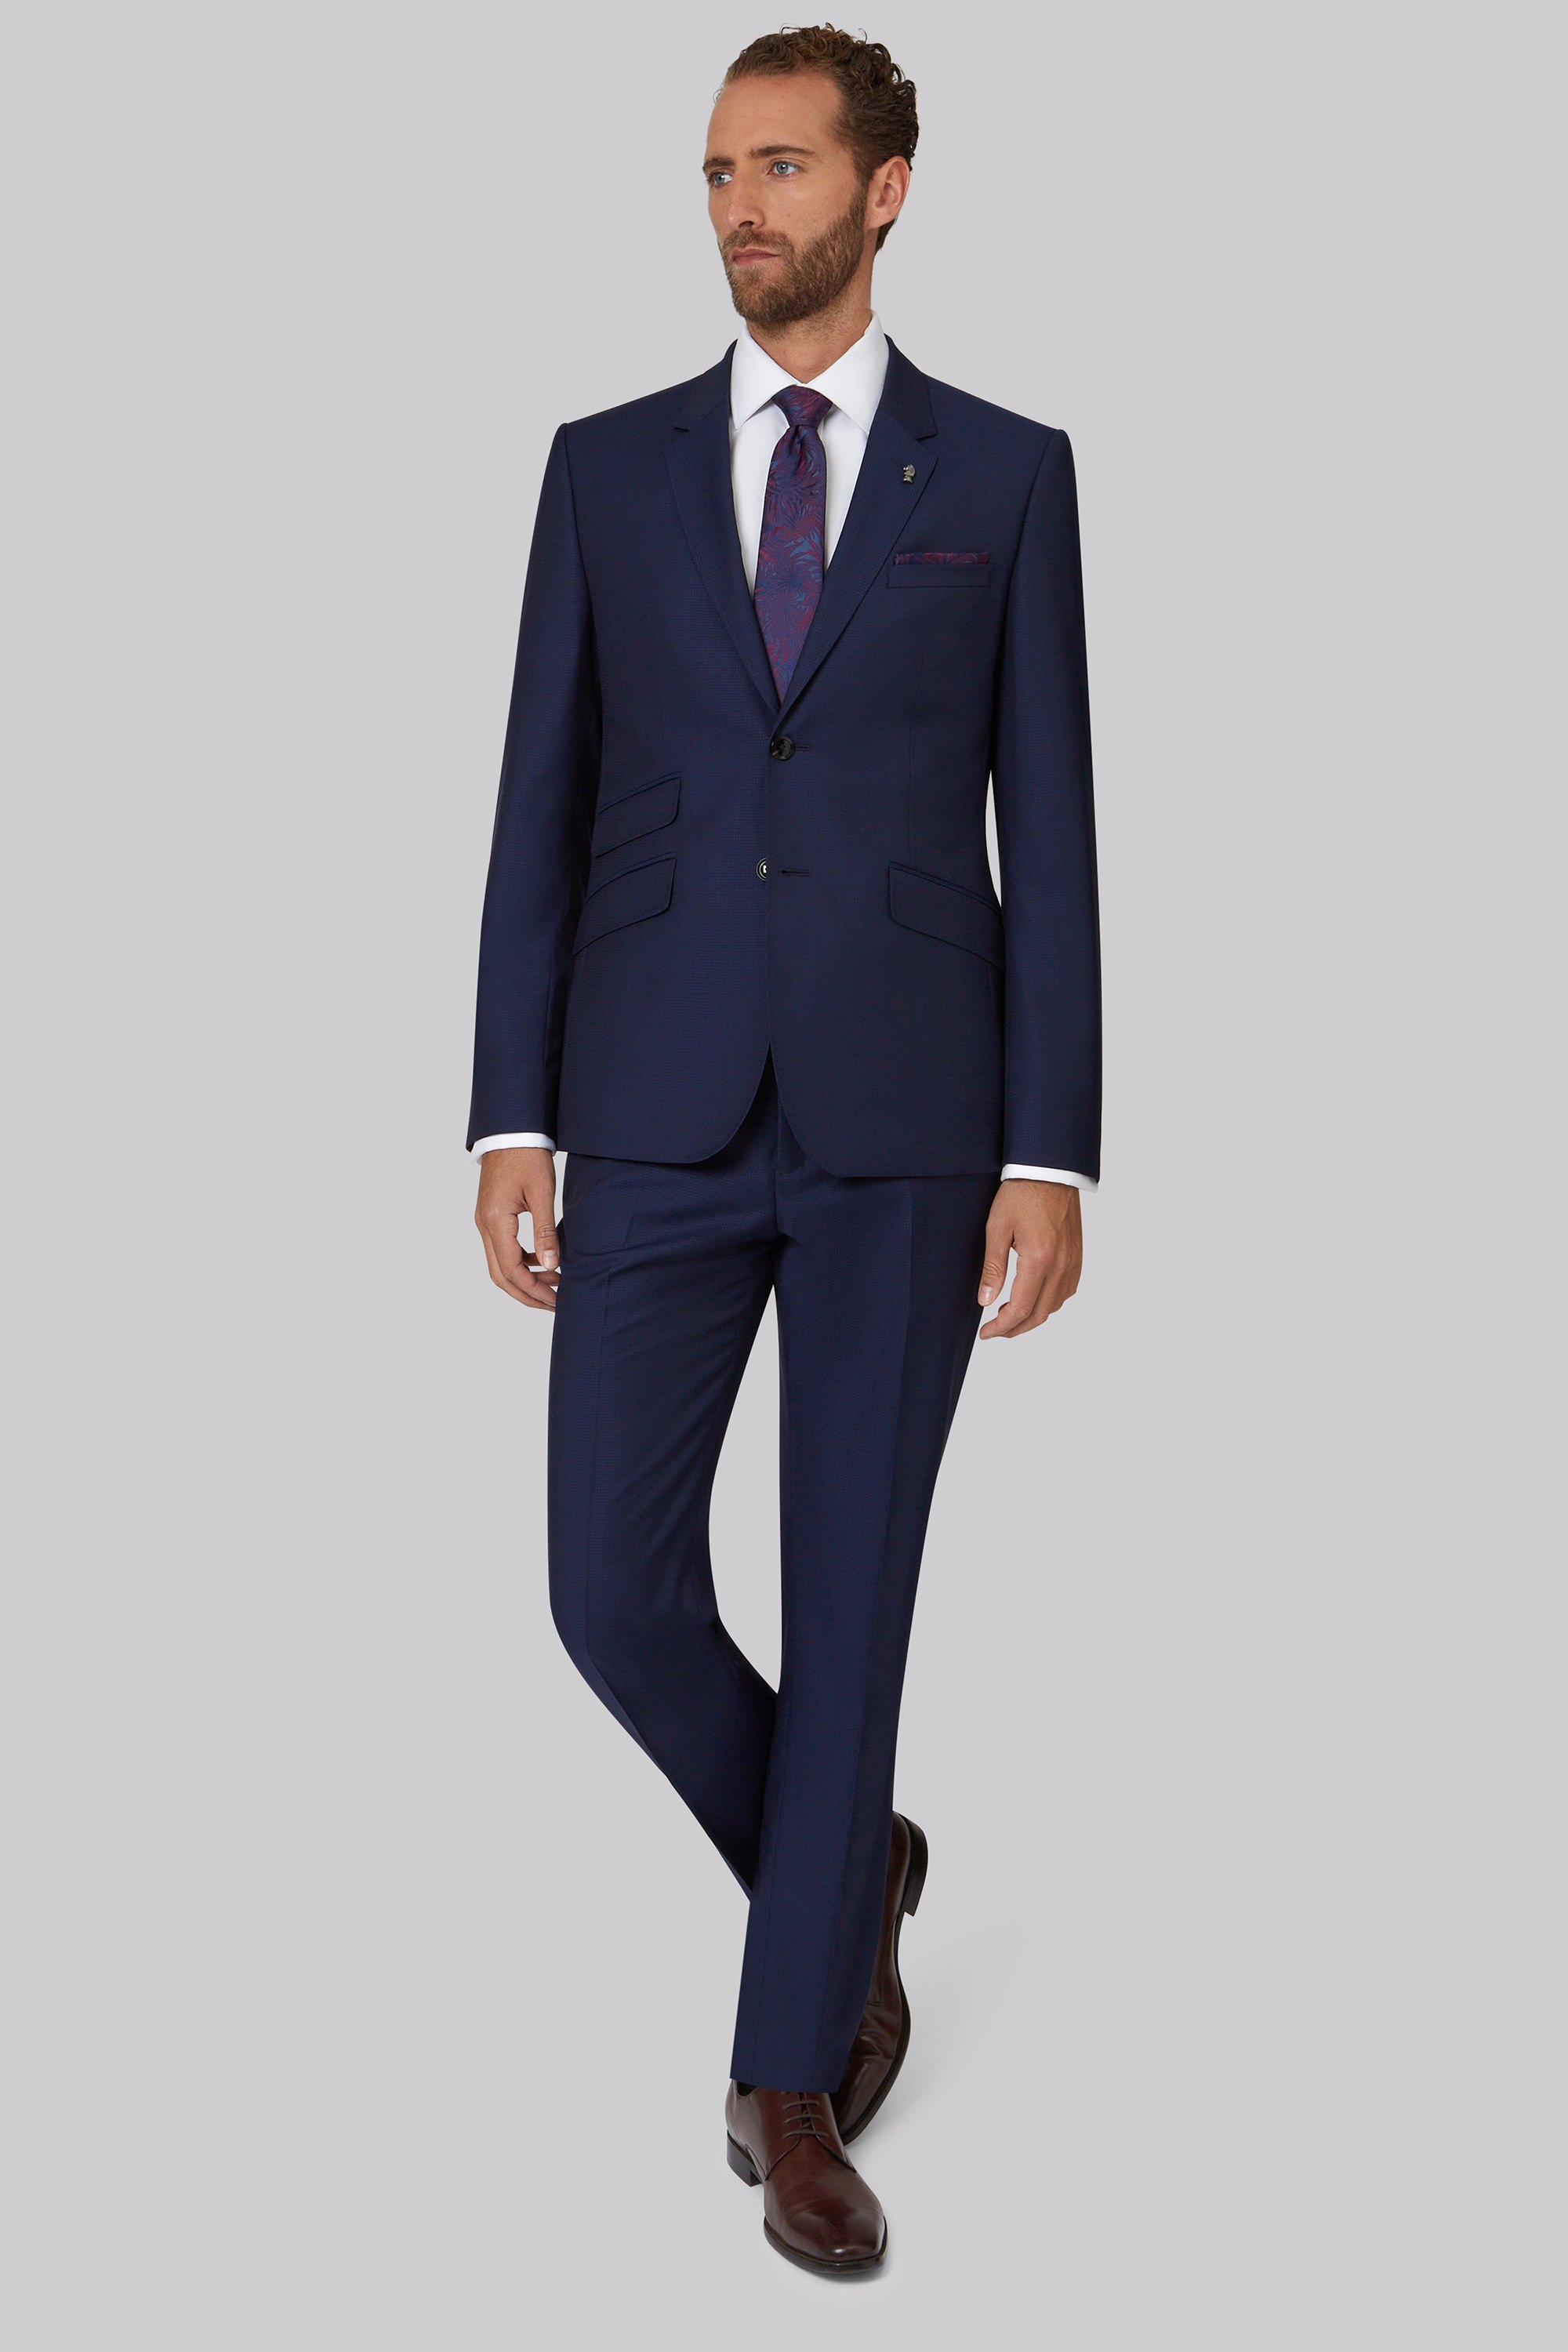 Ted Baker Blue Suits And Shoes